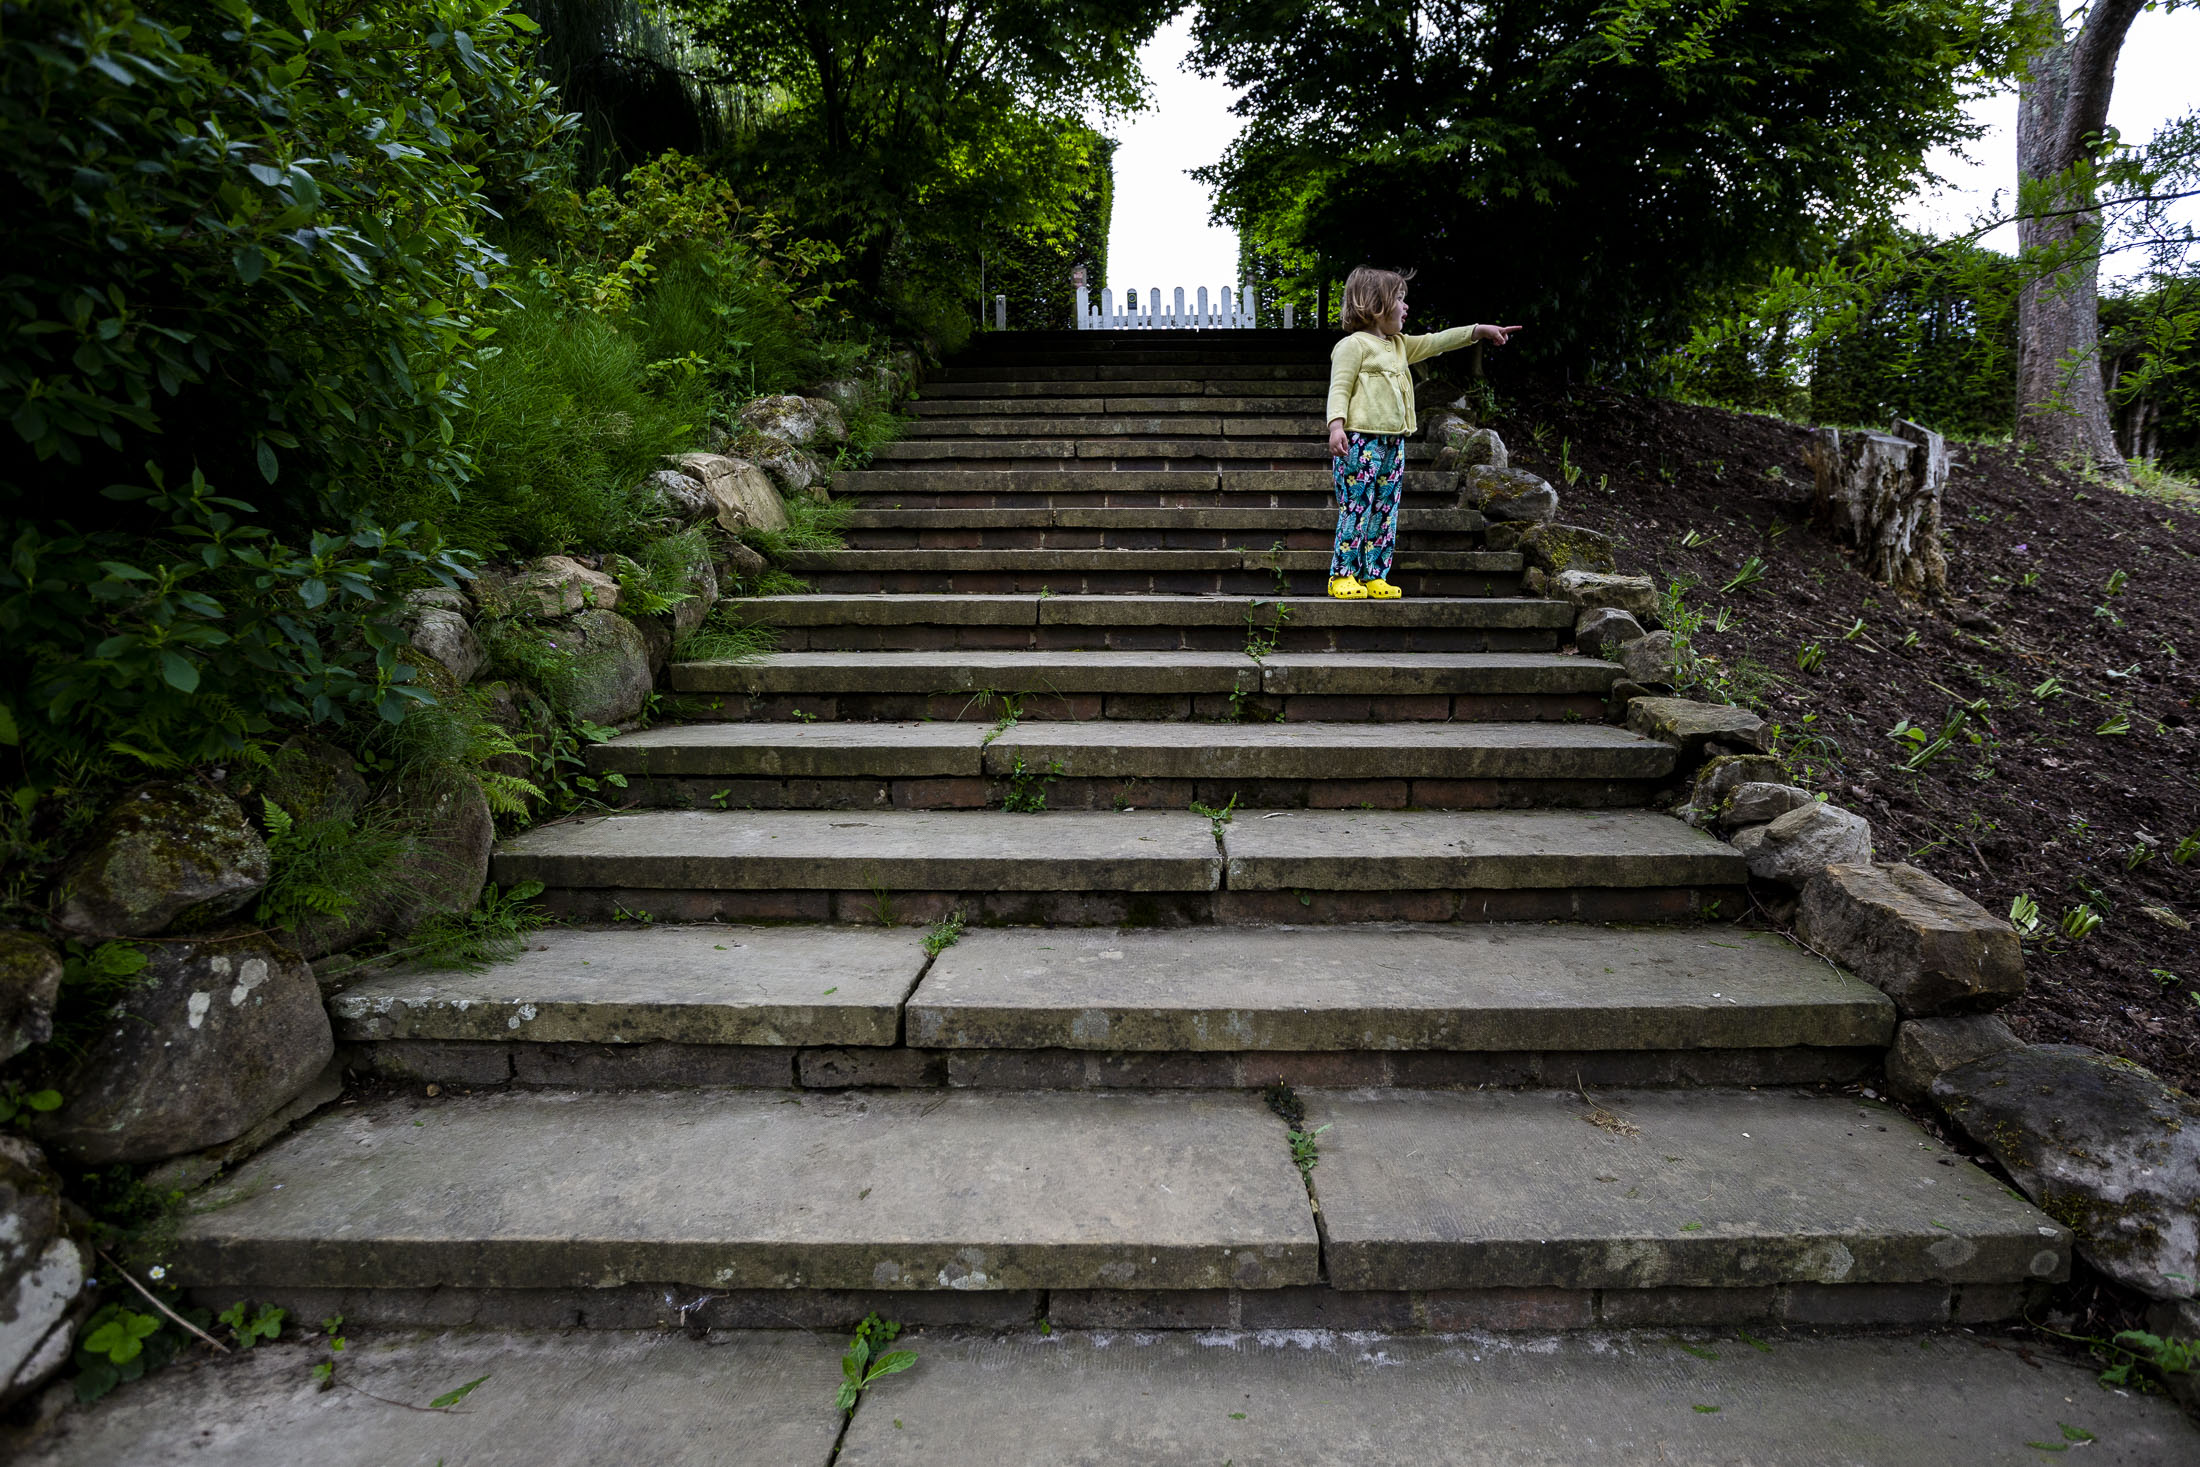 hazel pointing on stairs family photography.jpg